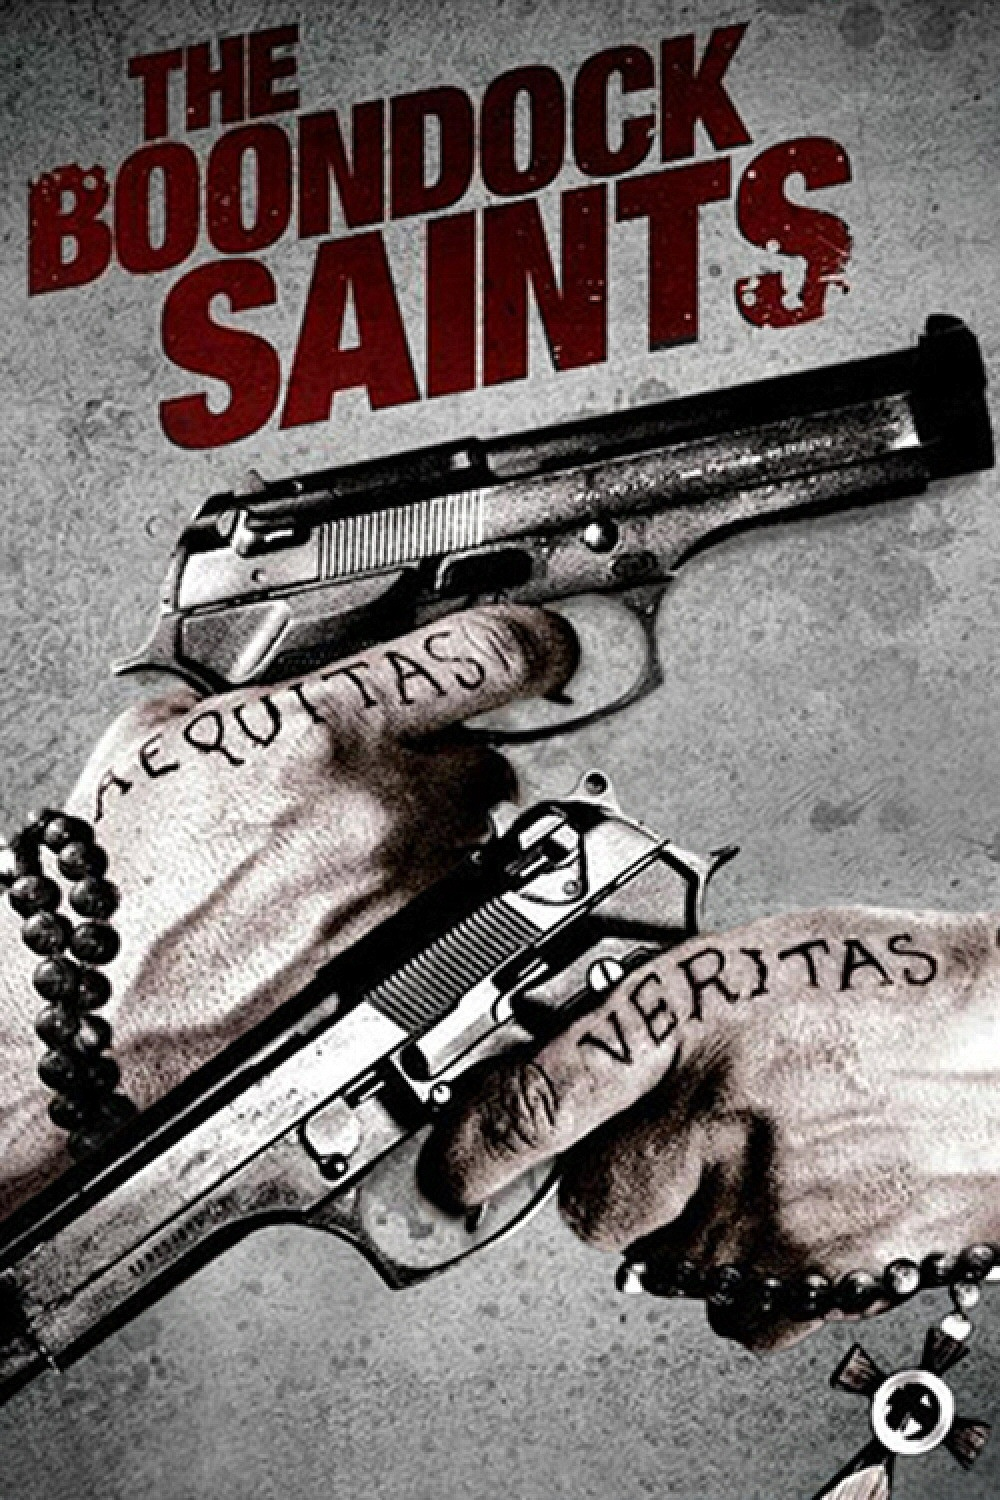 The Boondock Saints - Release Date: 1999Rating: REmi Score: 9/10This is an exhilerating film set in the streets of Boston during a period of extream violence and crime. Two brothers, Conner and Murphy, have had enough and decide to take justice into their own hands. If like me you have a fancy for vigilanty justice, I highly recommend following the twin brother's adventure as they try to purify their hometown.